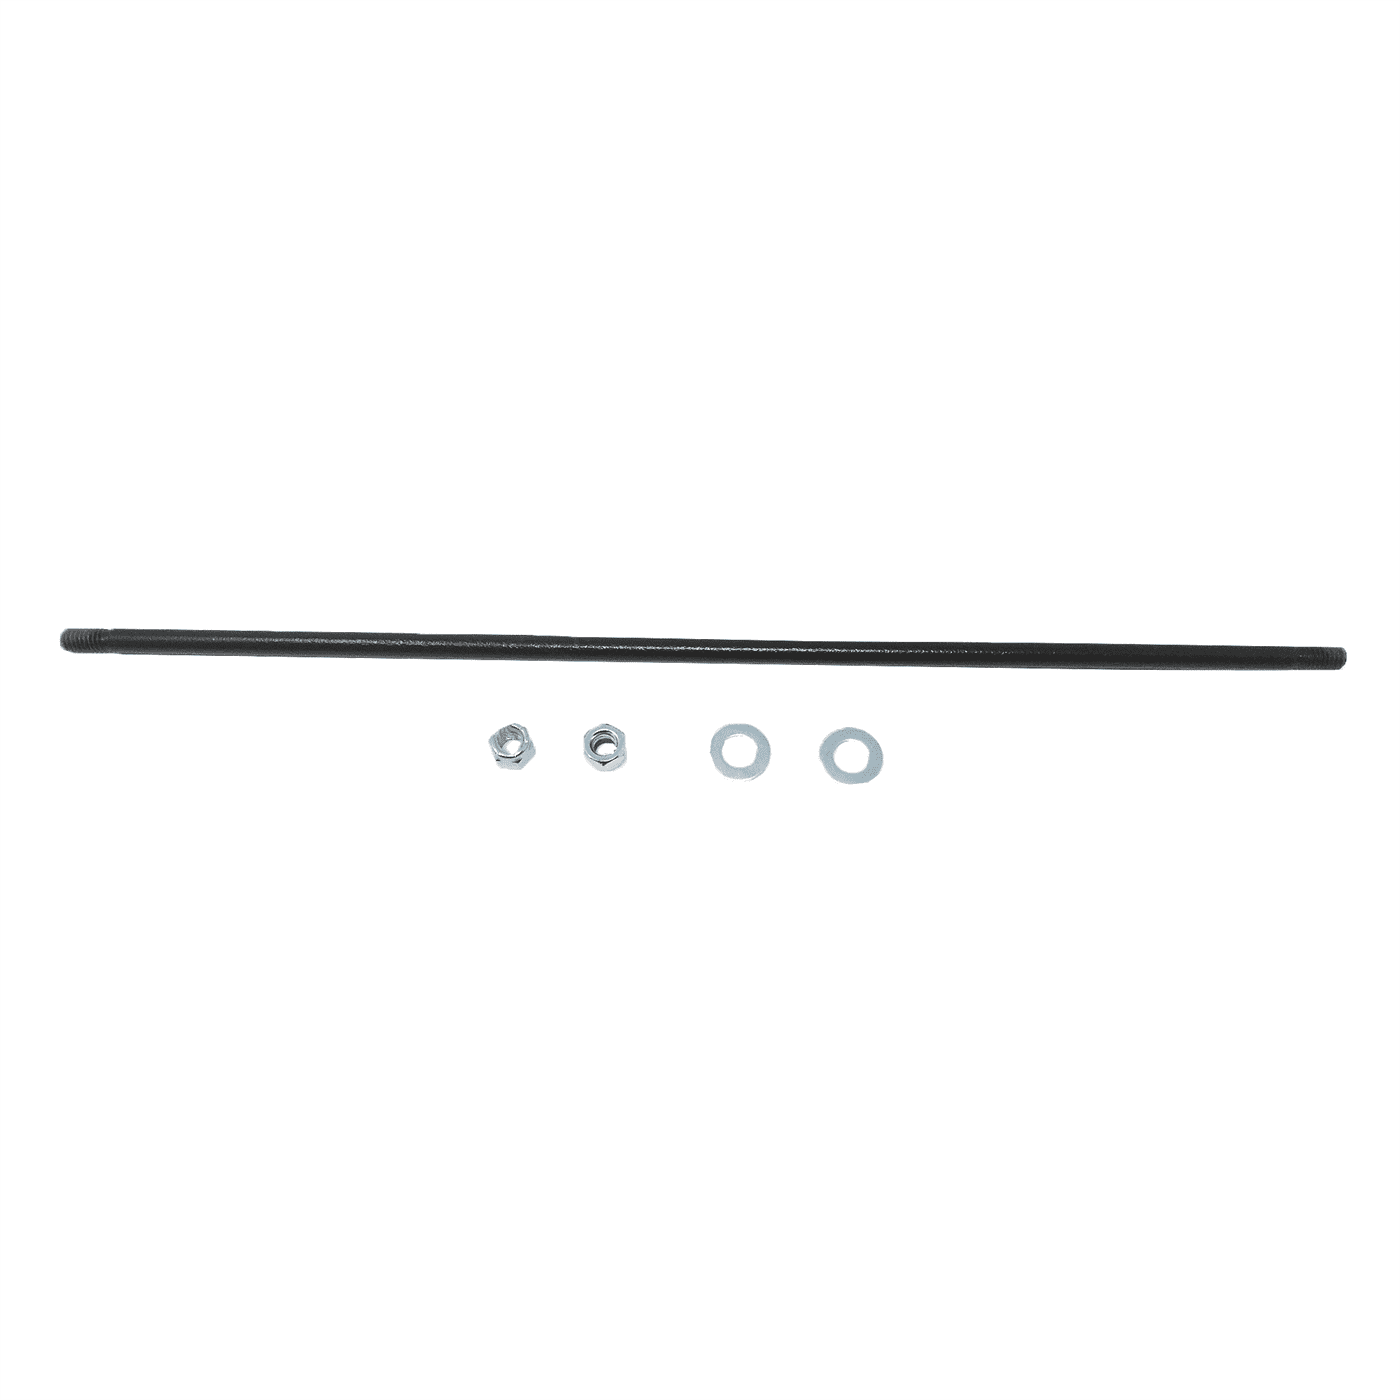 SCA030 | Traeger Tailgater & Elite 20 Axle Rod Kit, SCA030